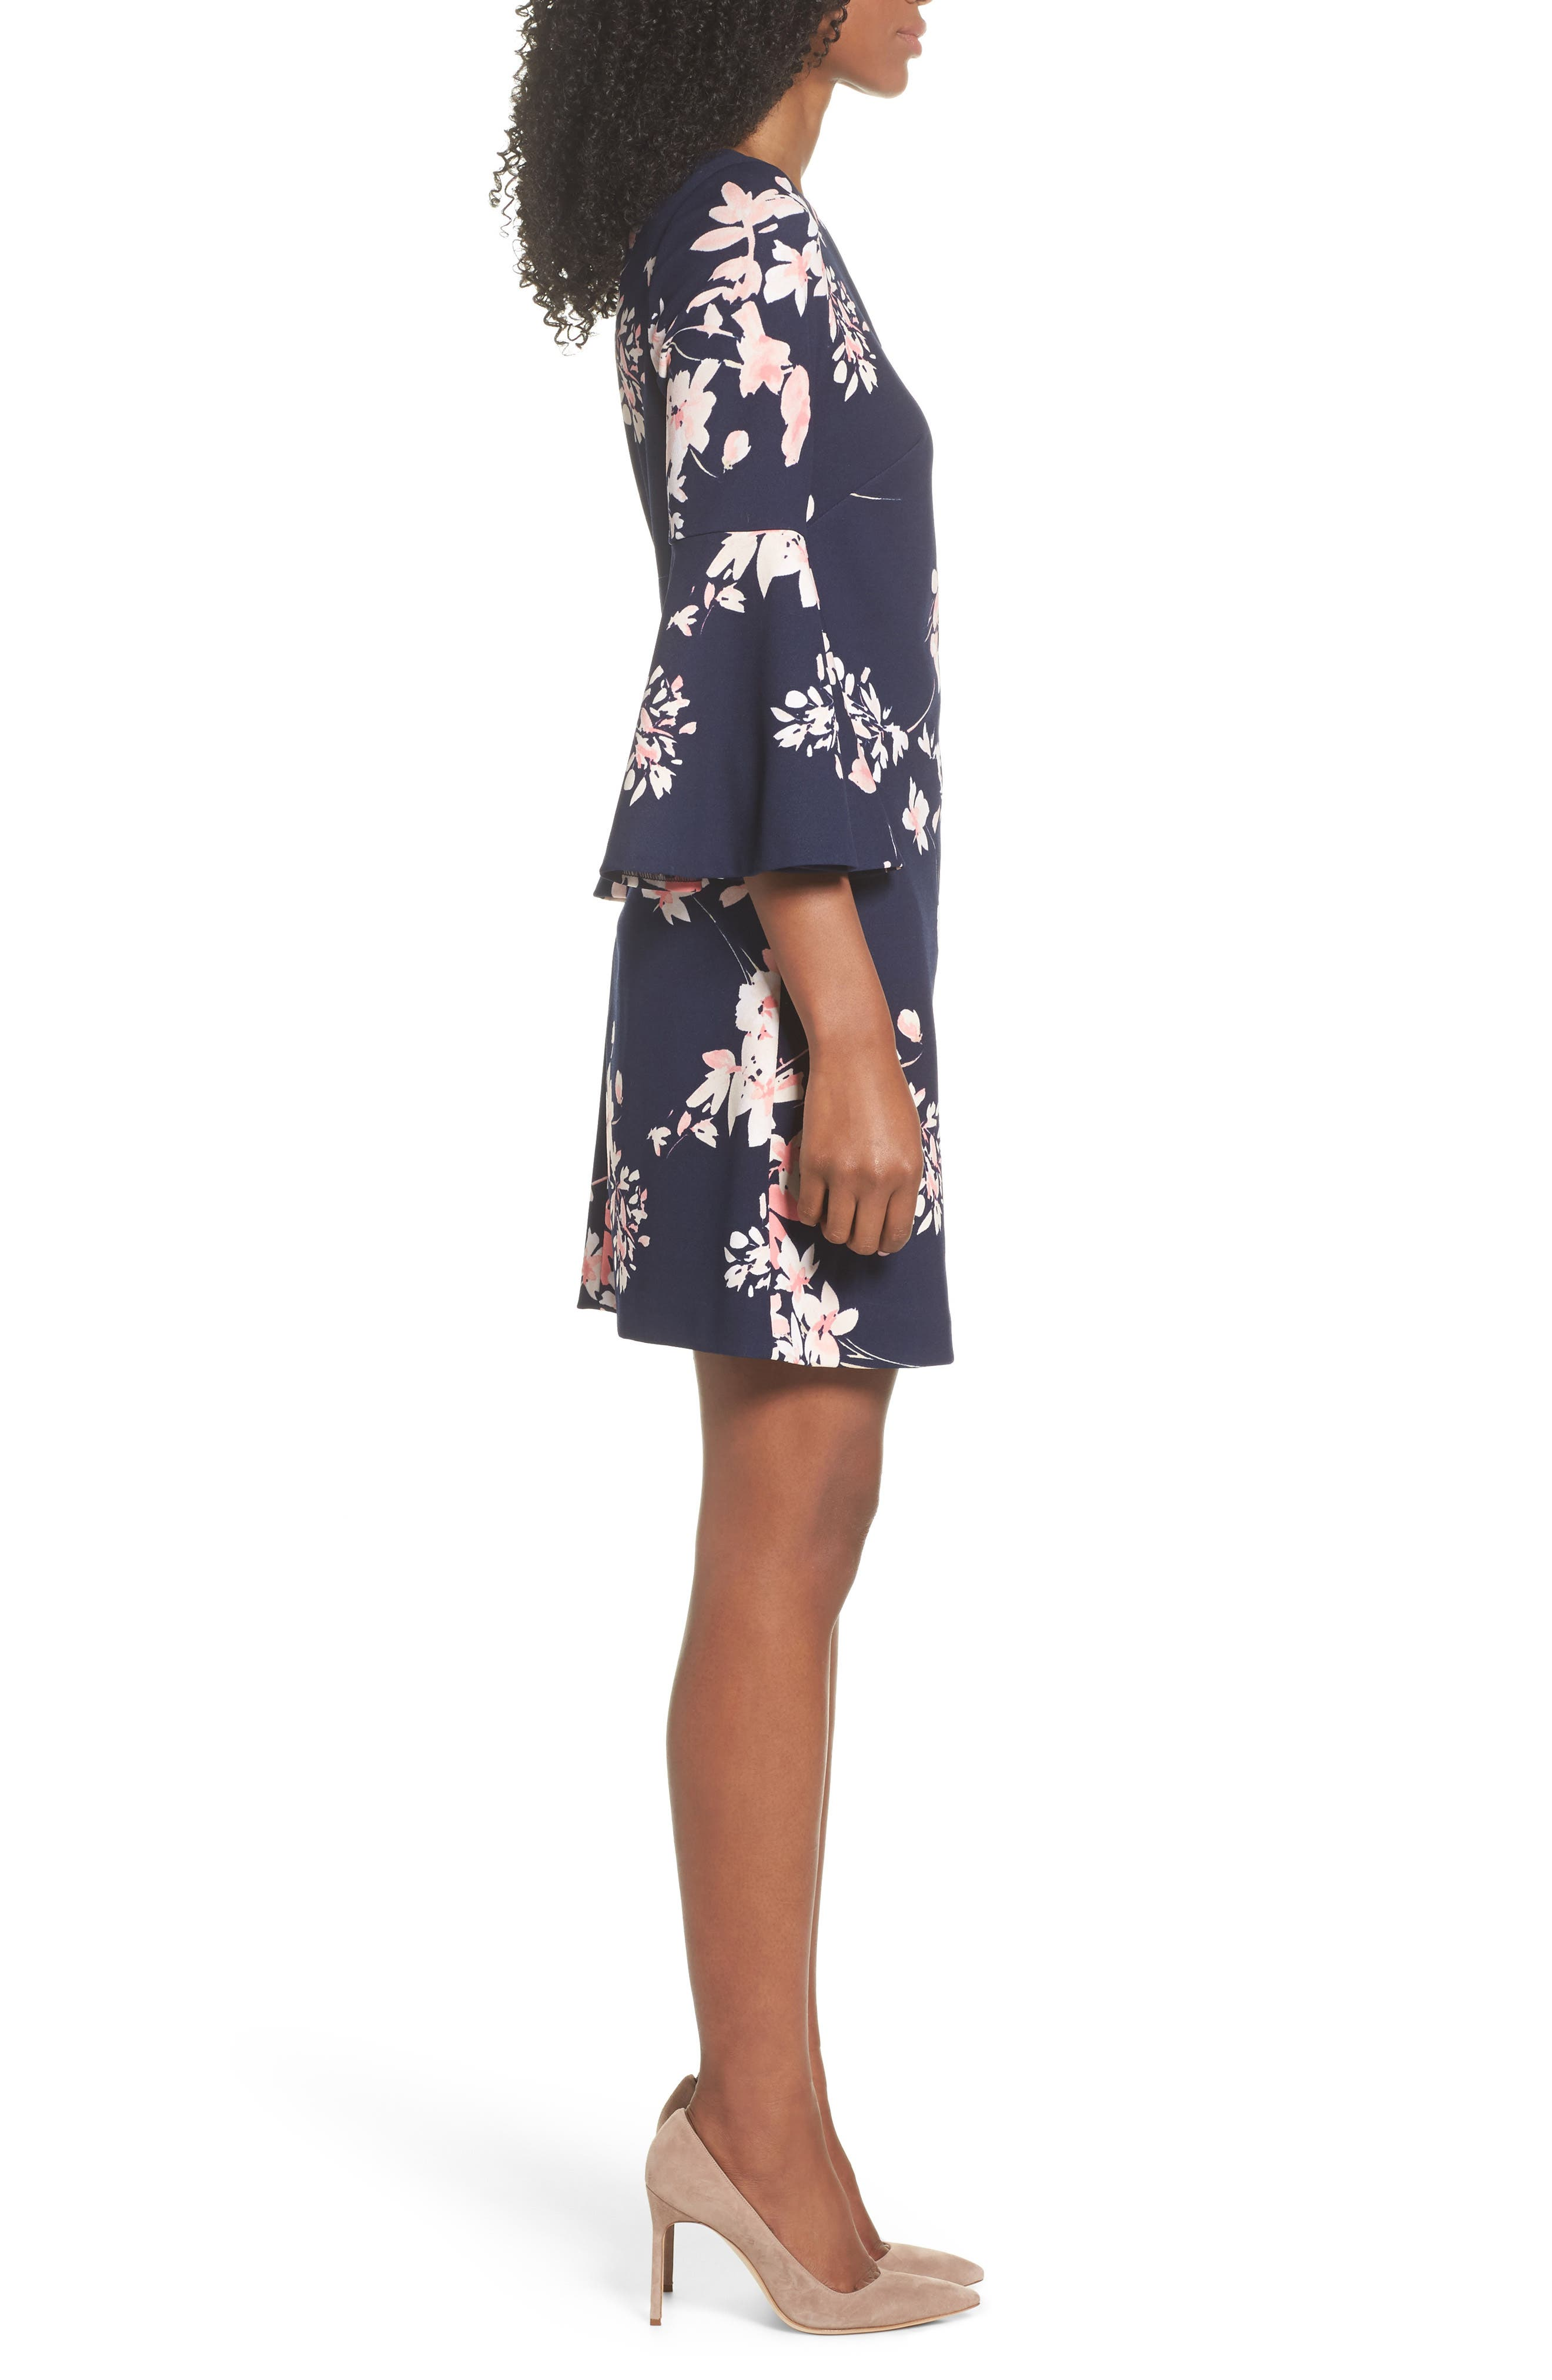 ELIZA J,                             Floral Bell Sleeve Dress,                             Alternate thumbnail 3, color,                             NAVY/PINK